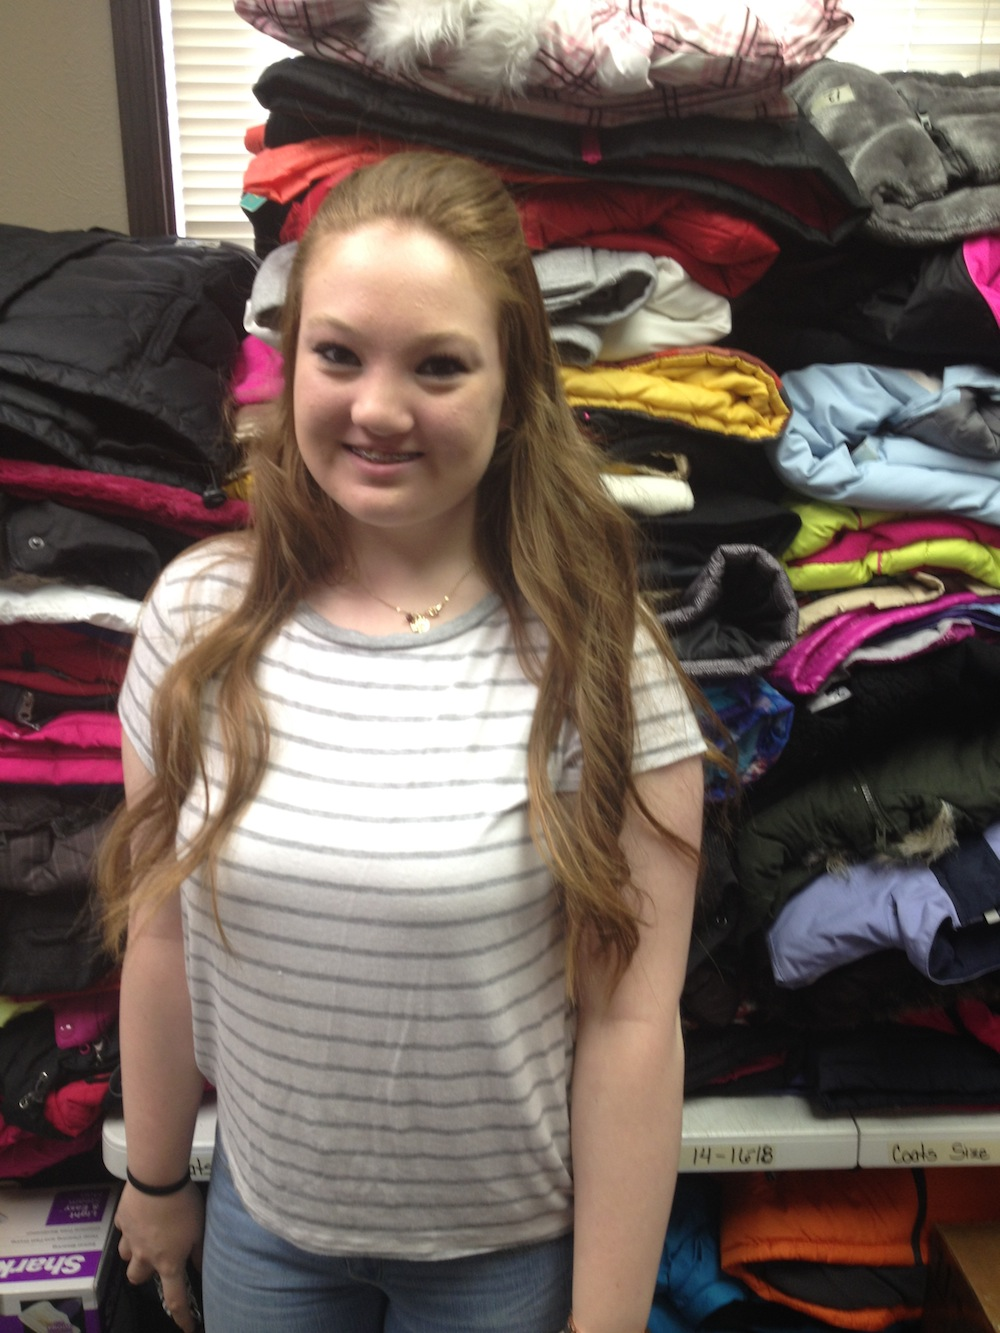 14-year-old Katie Dunavan volunteers at Locker #505. Volunteers make up the majority of the organization's workforce; apart from Kerschen, there are only two part-time employees working for Locker #505. Photo by Brenna Kelley/ NM News Port